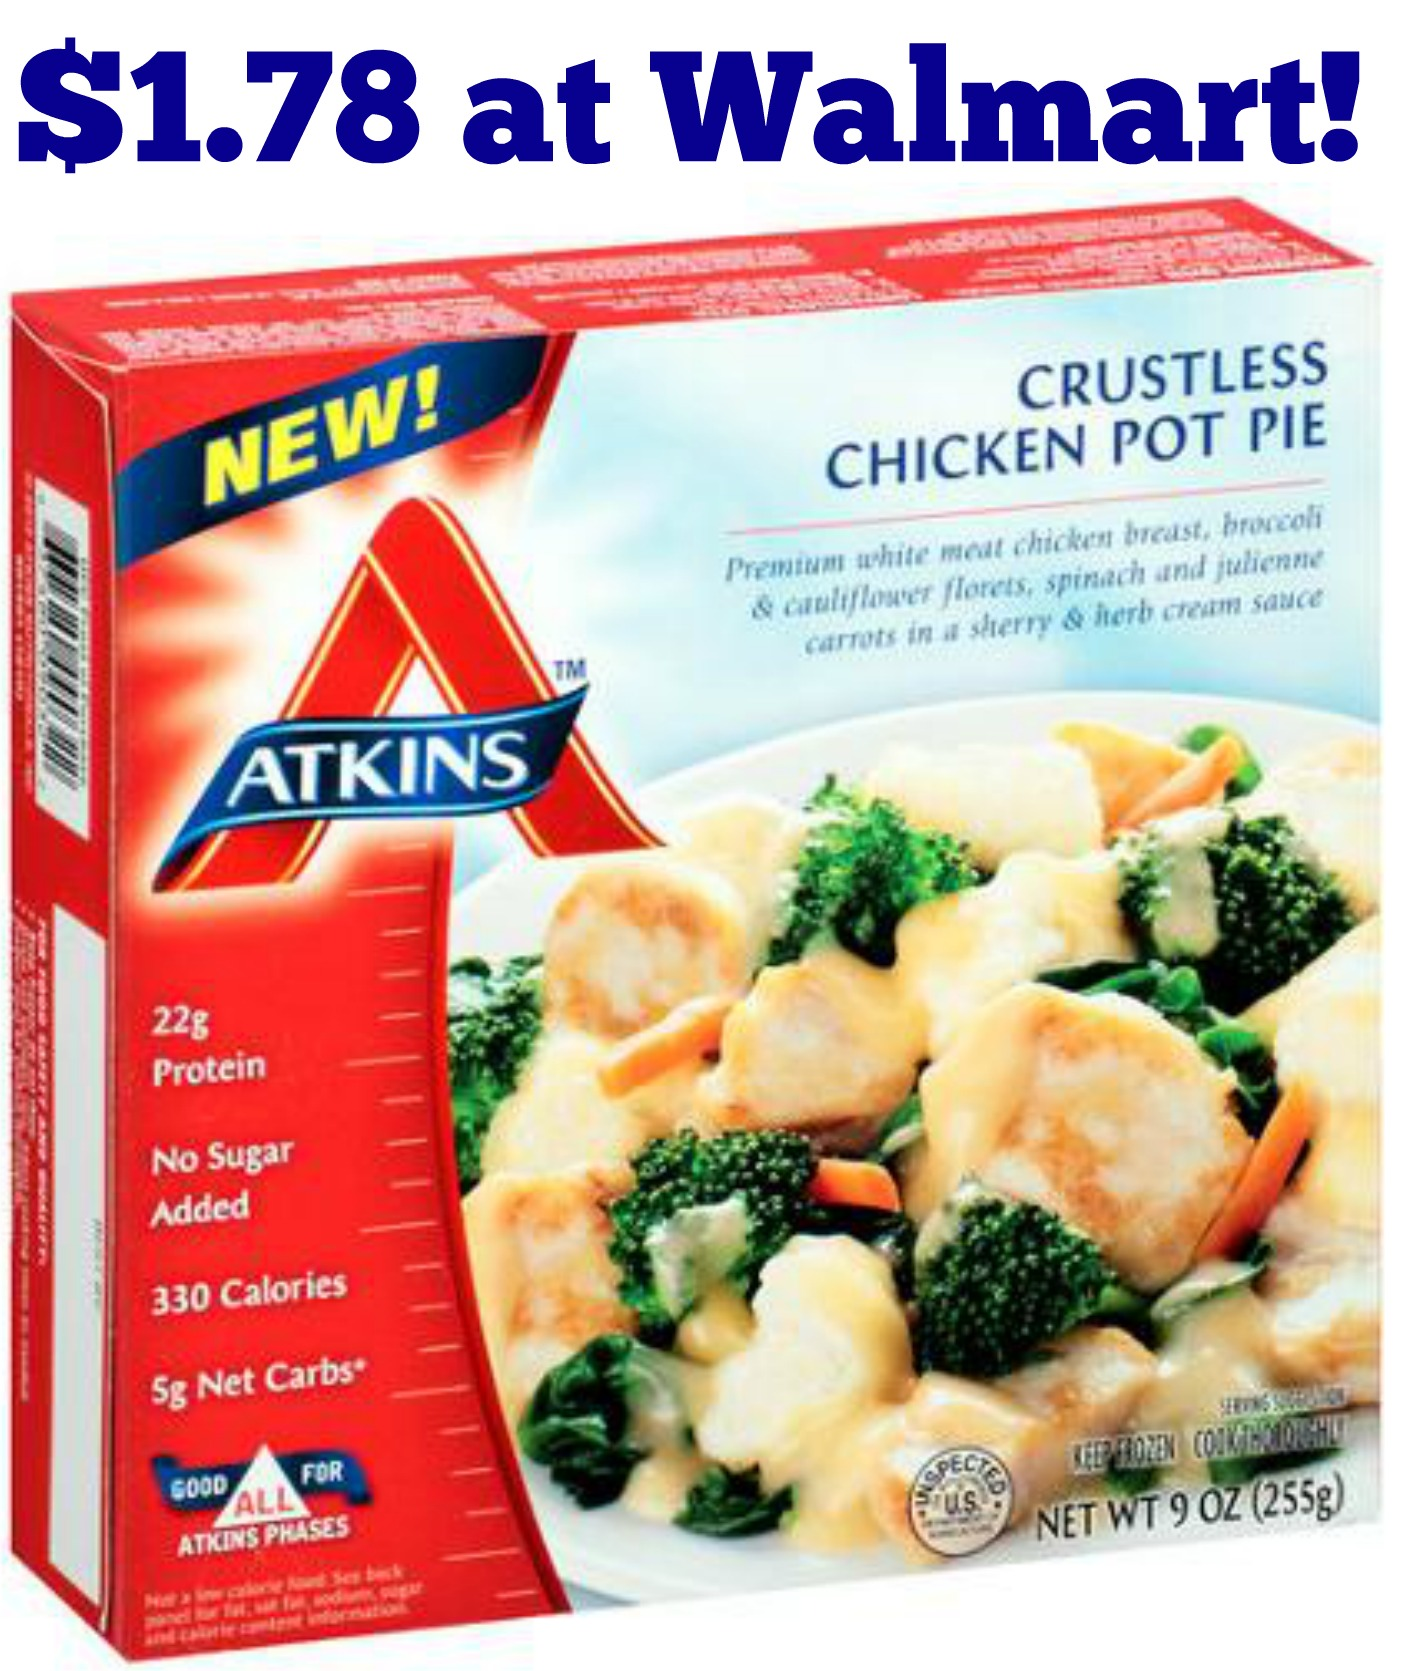 Atkins frozen meals coupon rooms to rent for couples in for Atkins cuisine baking mix